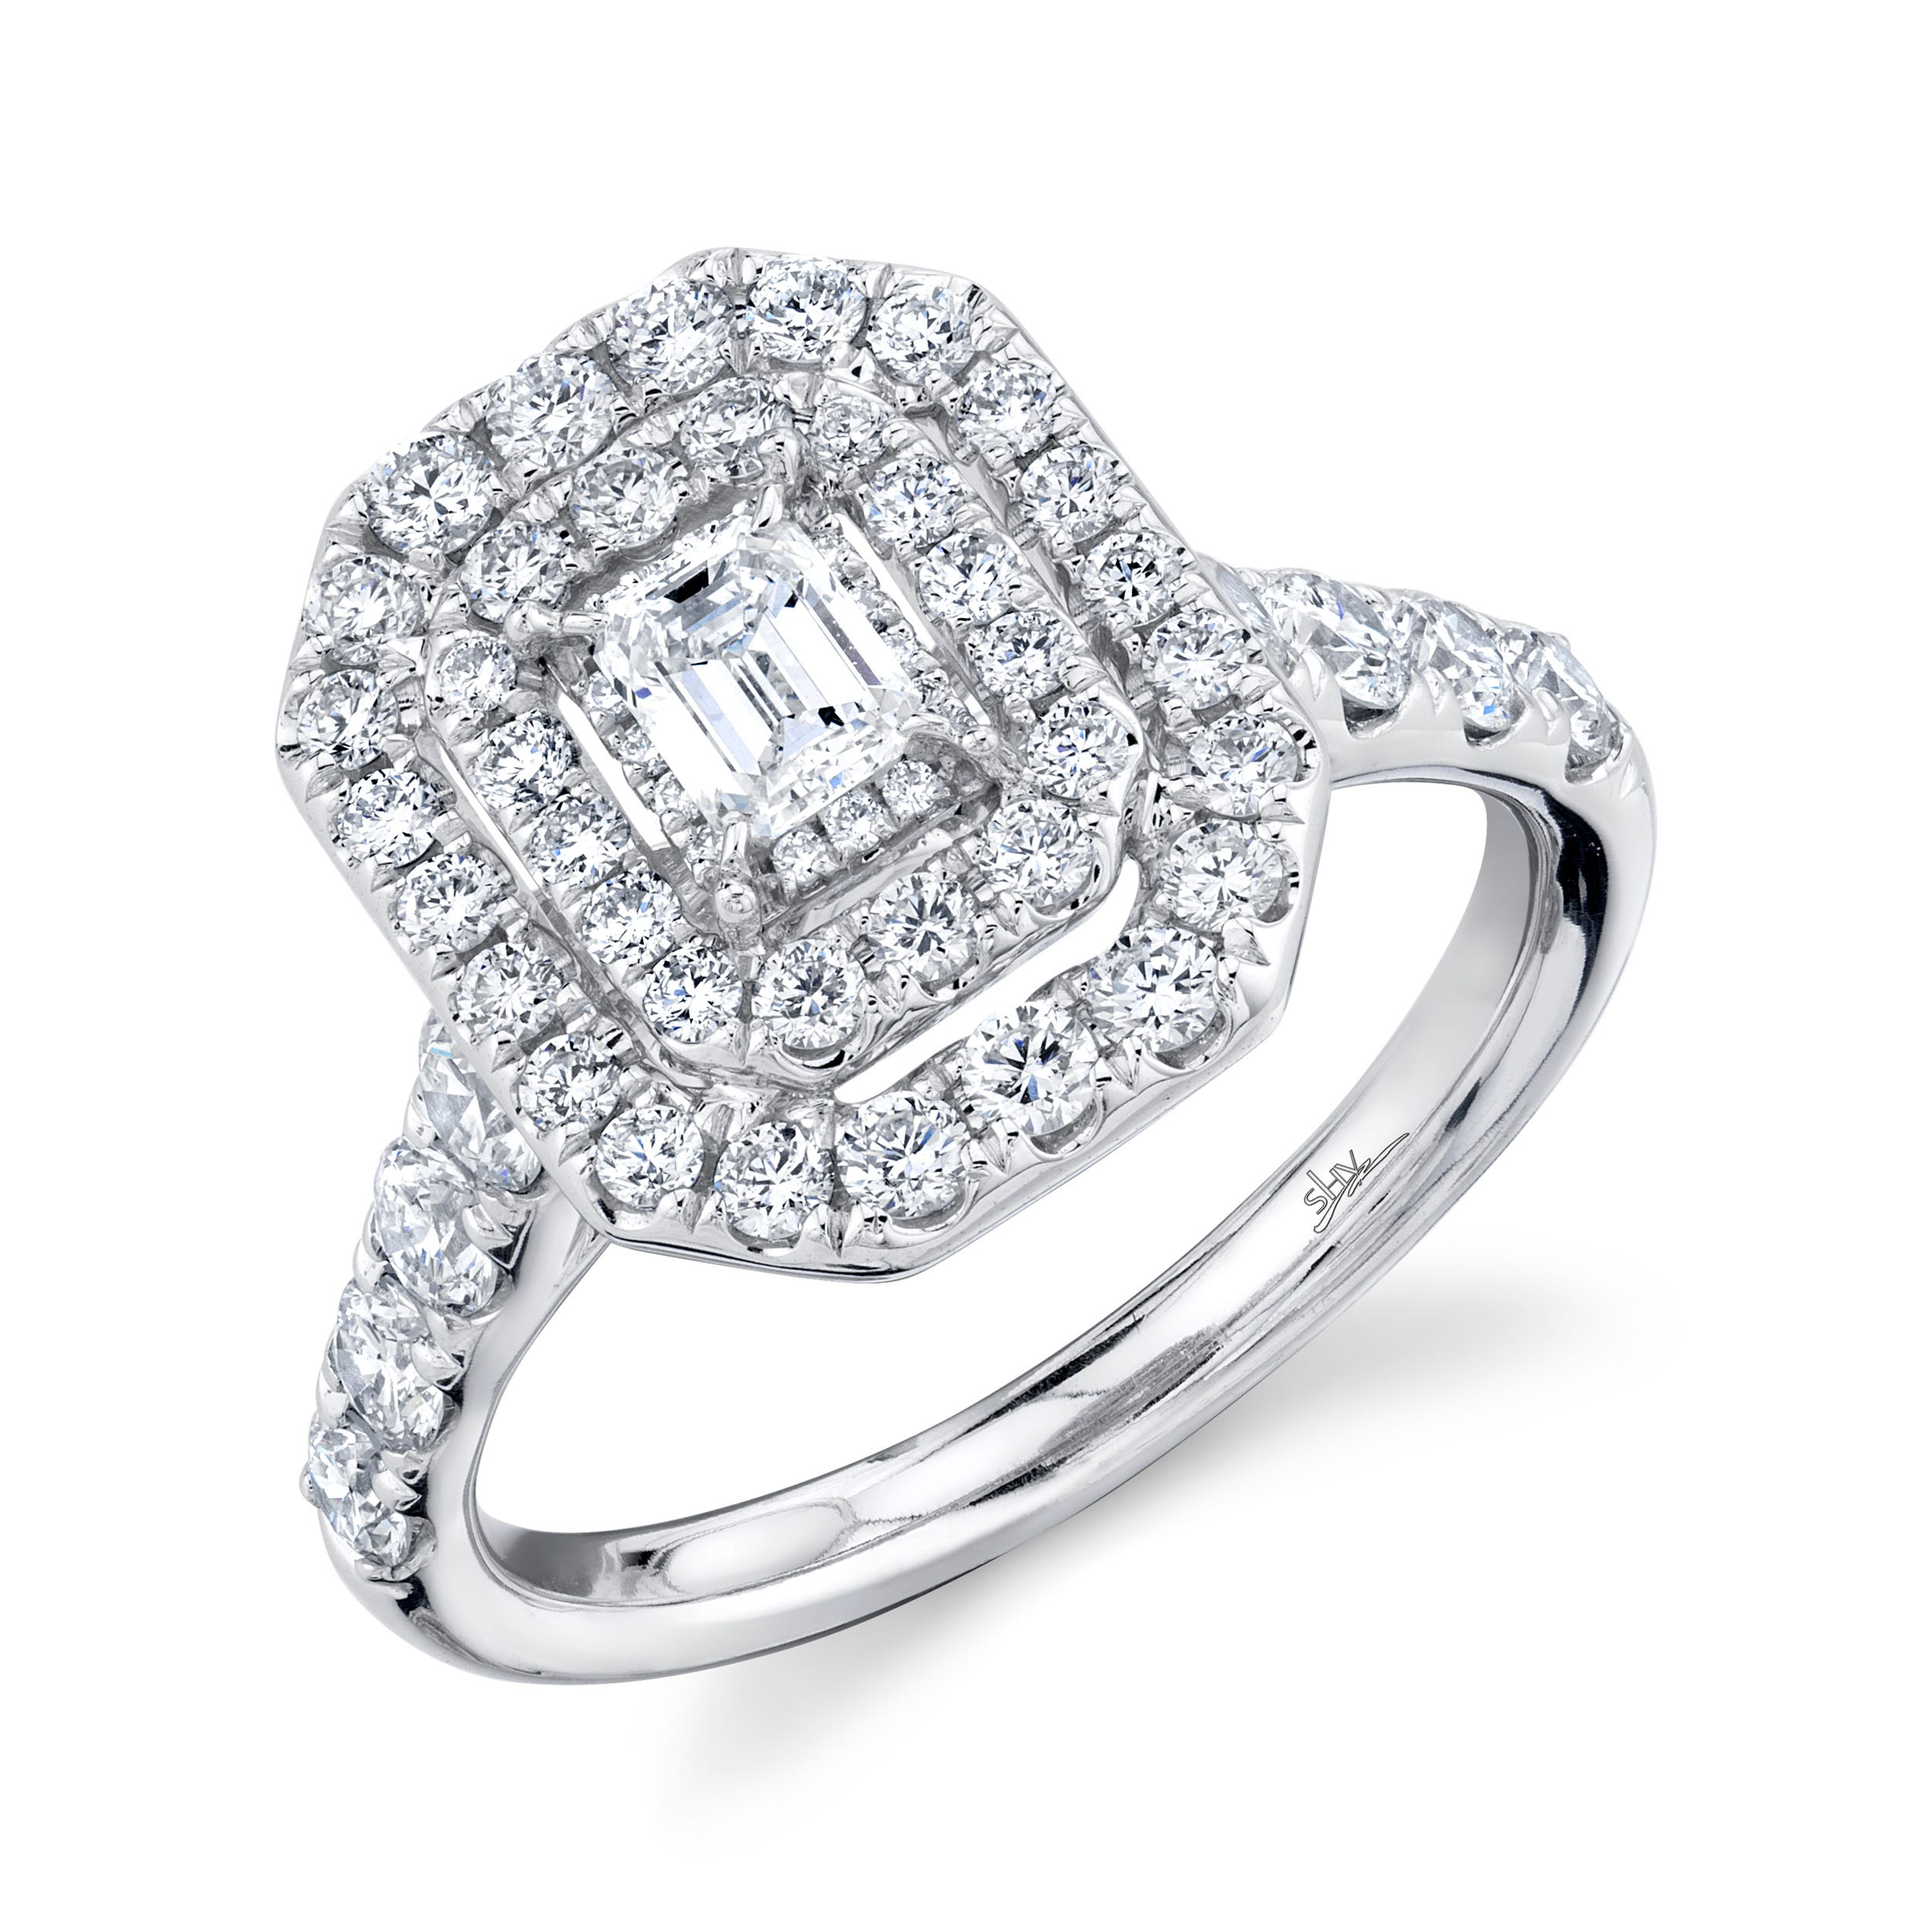 Shy Creation 1 1/2ctw. Emerald-Cut Diamond Double Halo Engagement Ring in 14k White Gold SC22007122